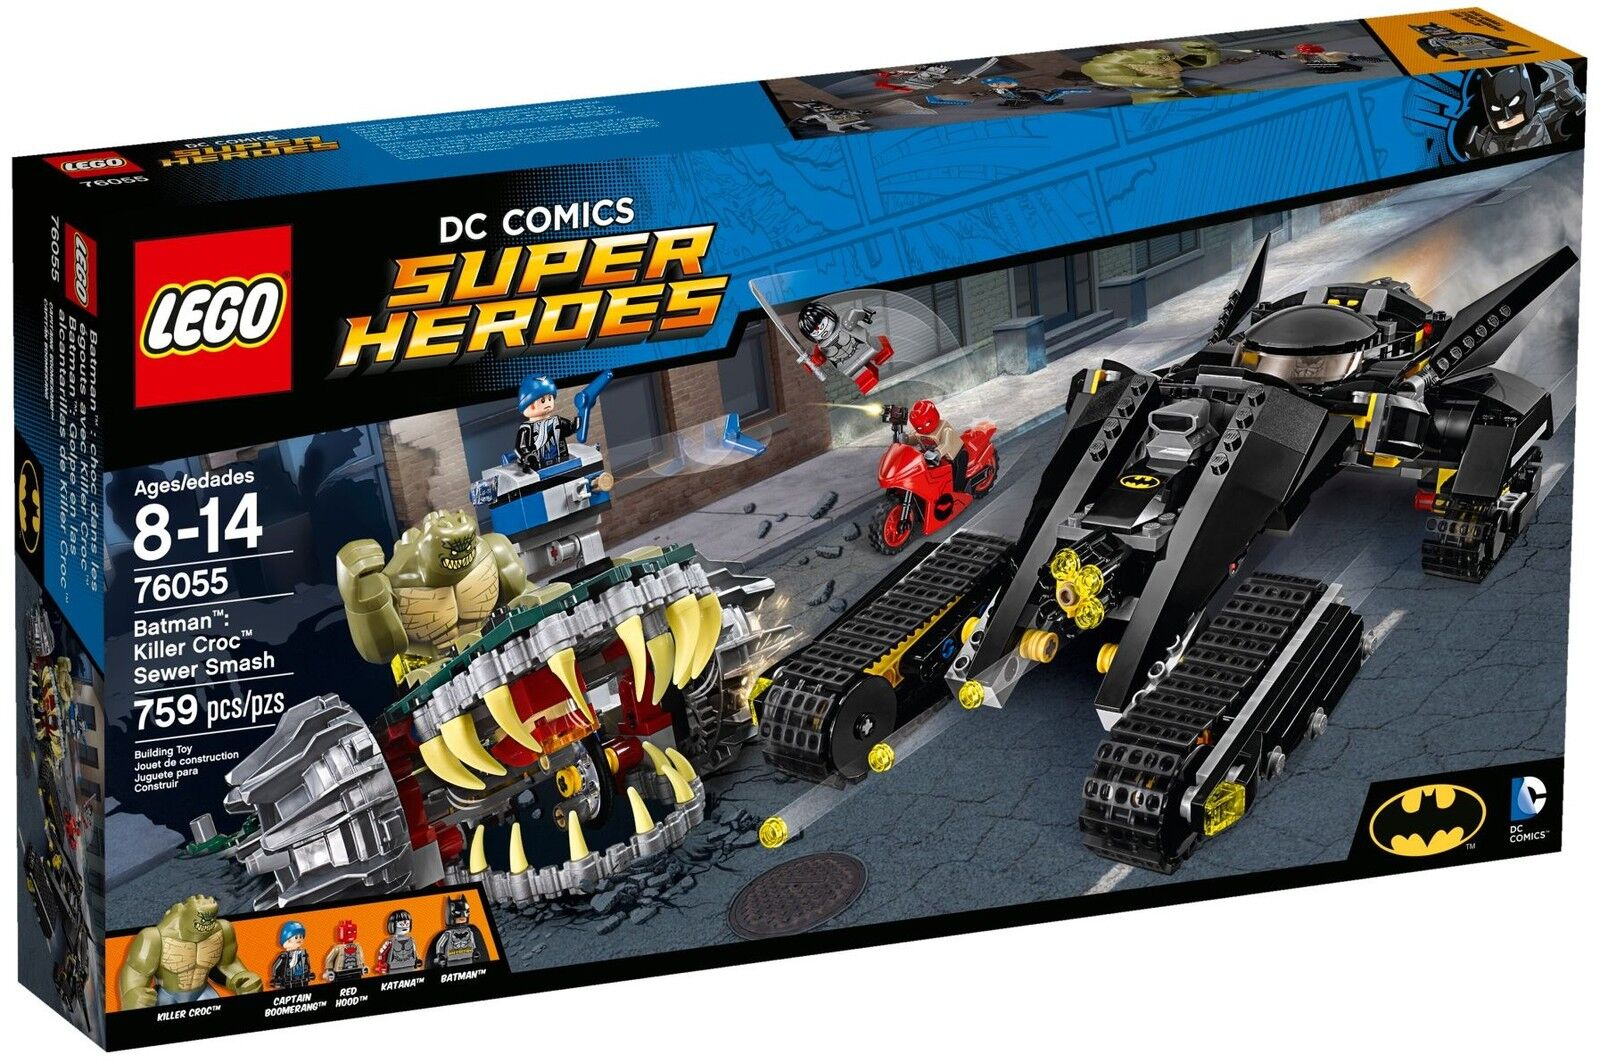 LEGO DC Super Heroes - 76055 Batman: Killer Croc Sewer Smash - Neu & OVP